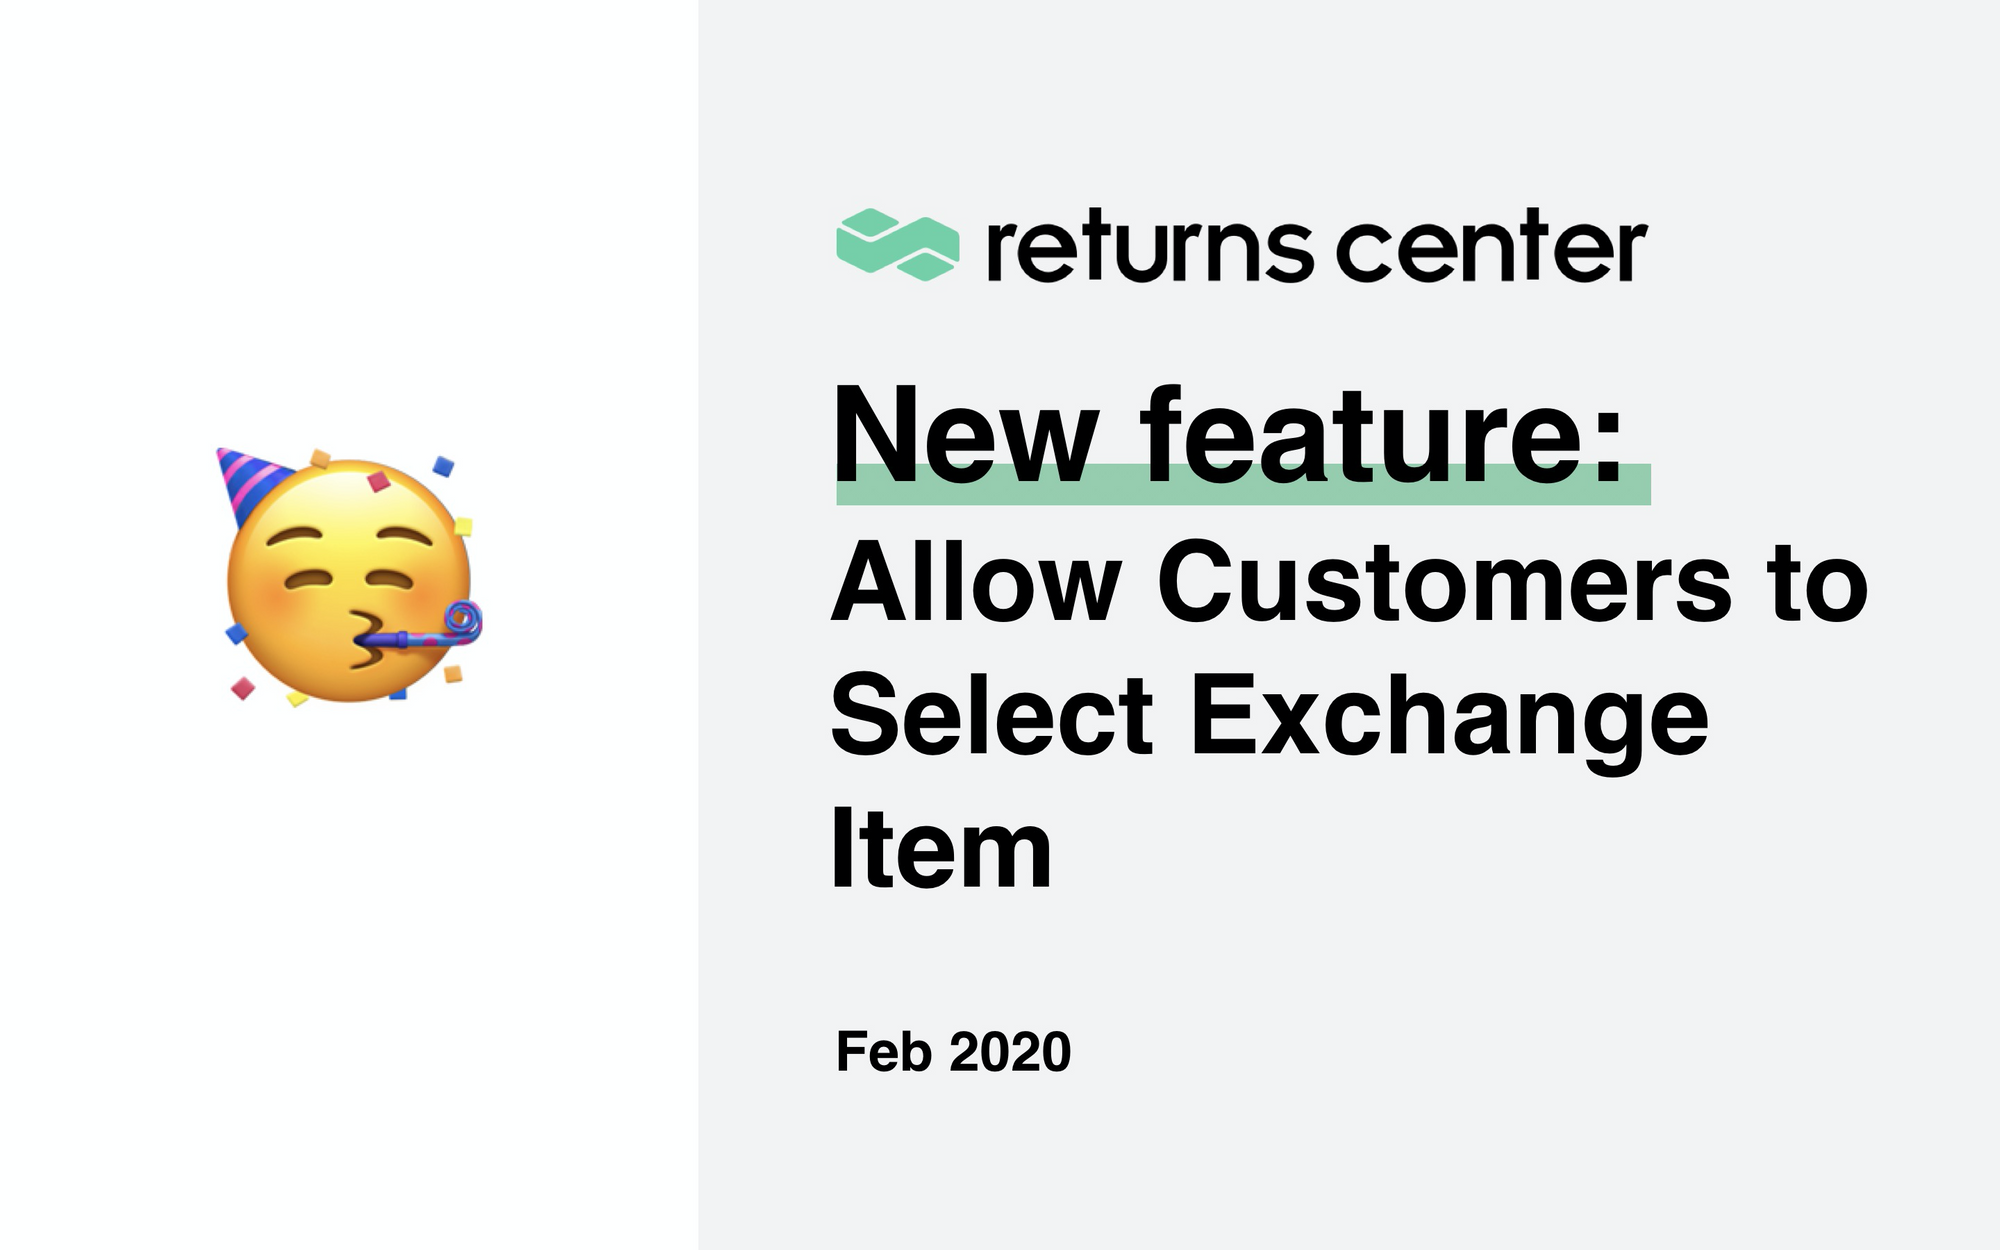 New Feature: Allow Customers to Select Exchange Item